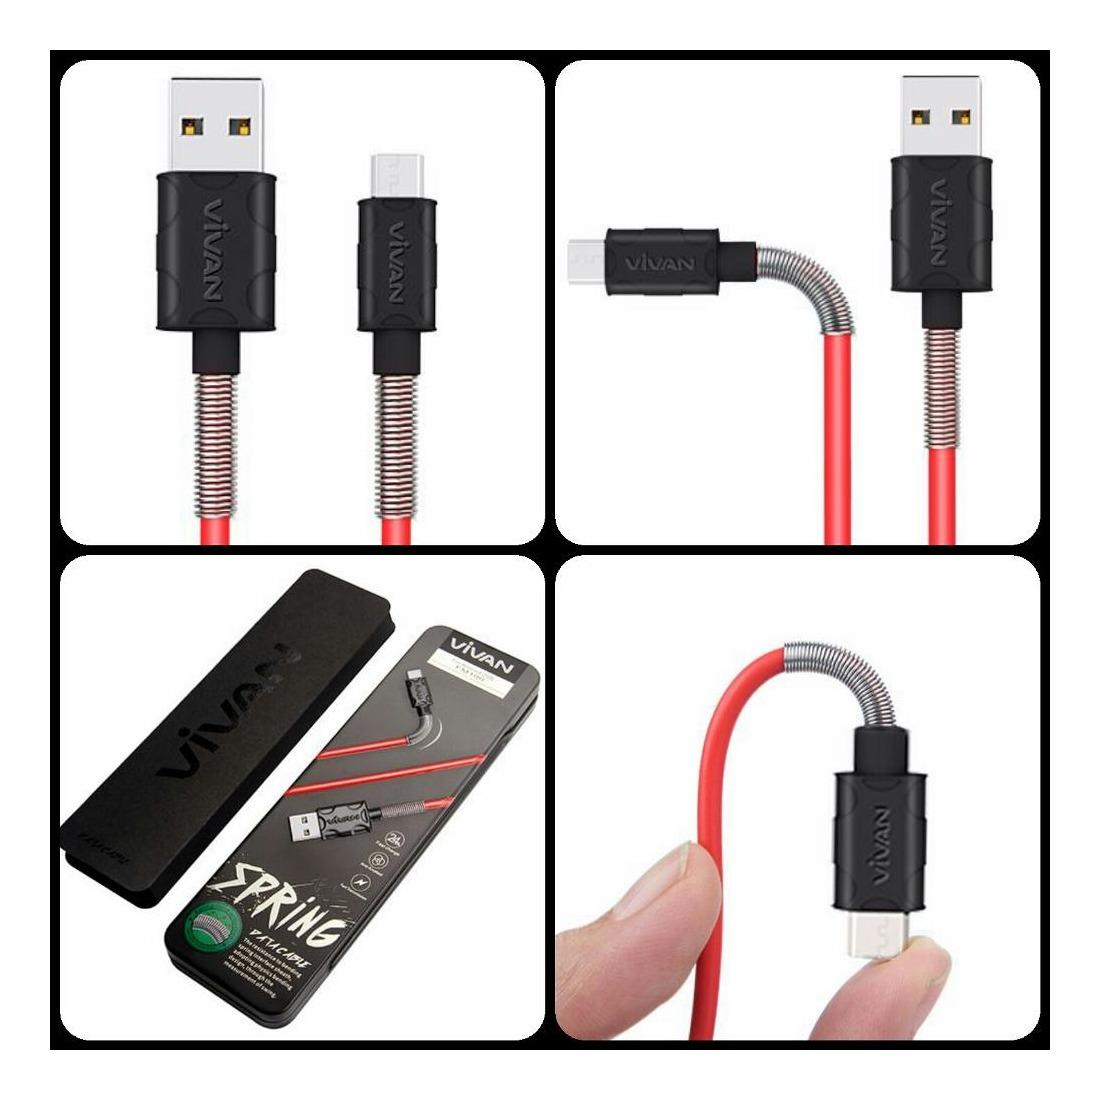 Kabel Charger Data Smartphone Iphone 4 Flat Wellcomm Hitam Vivan Fm100 24a 1m Spring Micro Usb Cable For Andoid